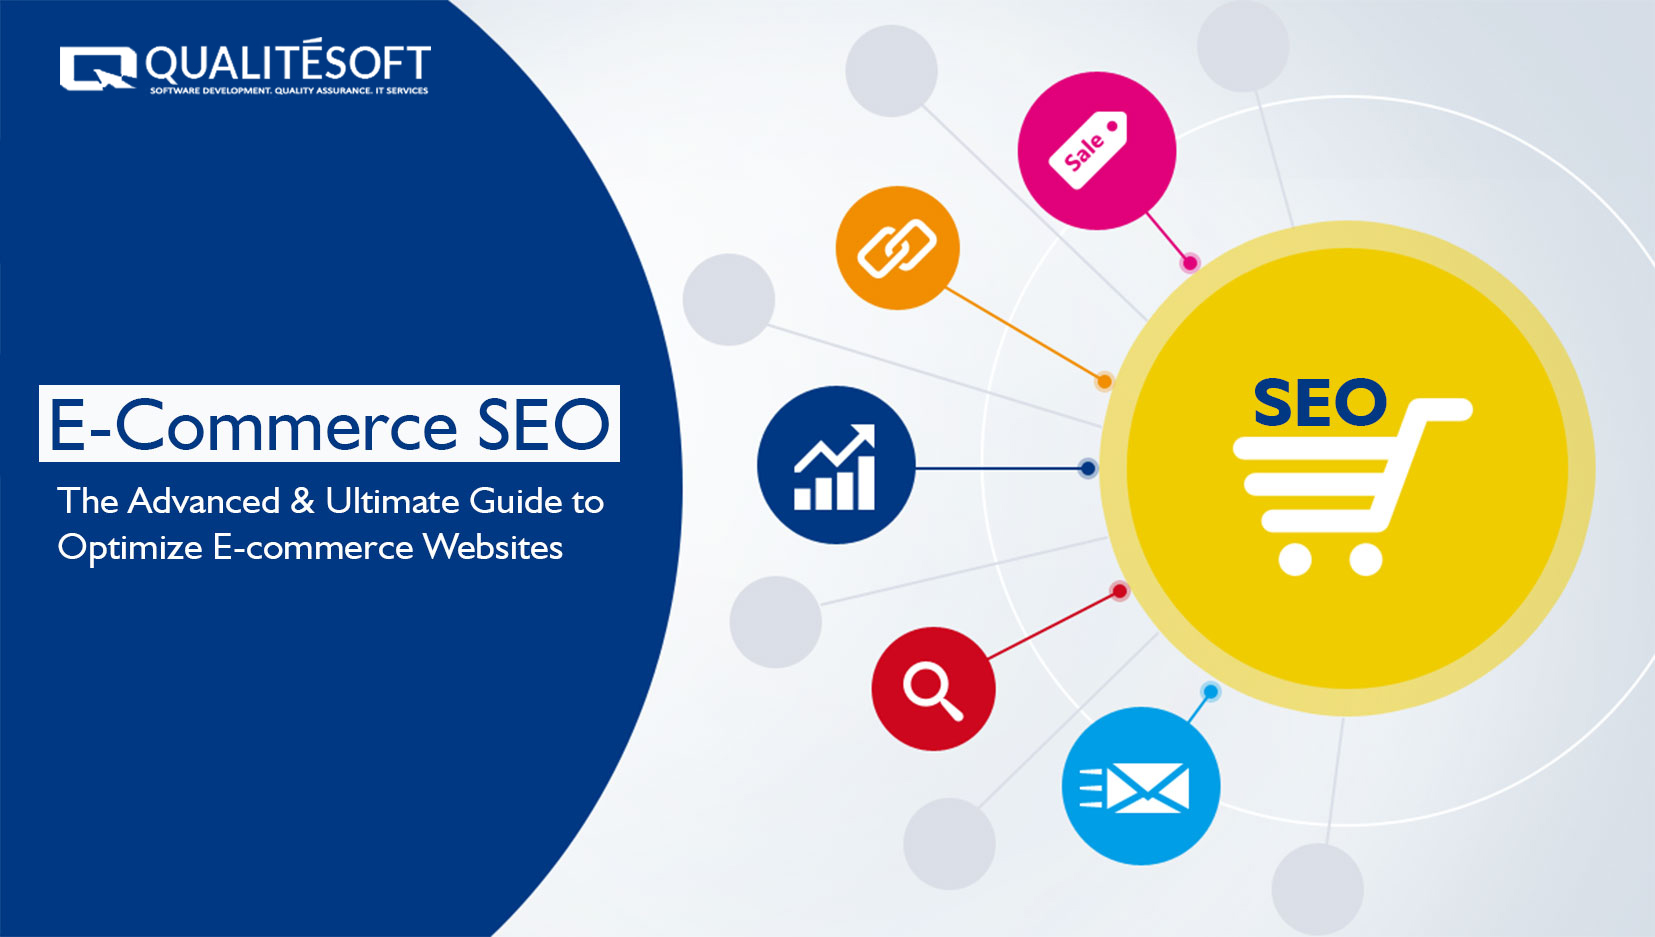 E-commerce SEO: The Advanced & Ultimate Guide to Optimize E-commerce Websites